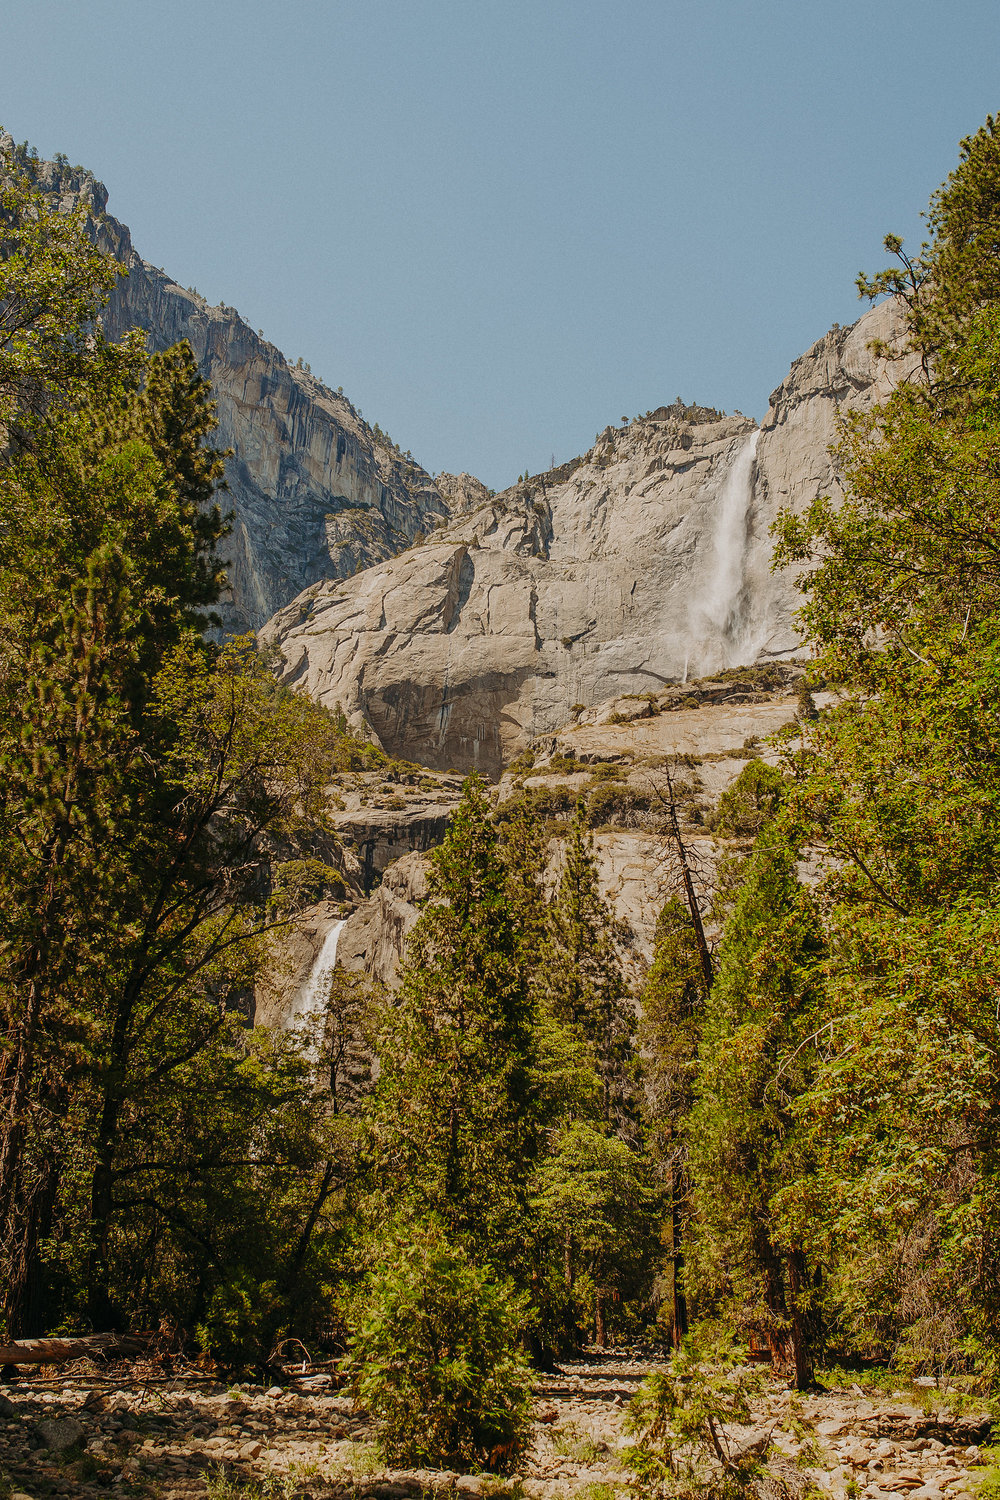 small-Visit-Yosemite-National-Park-Pictures-California-6.jpg